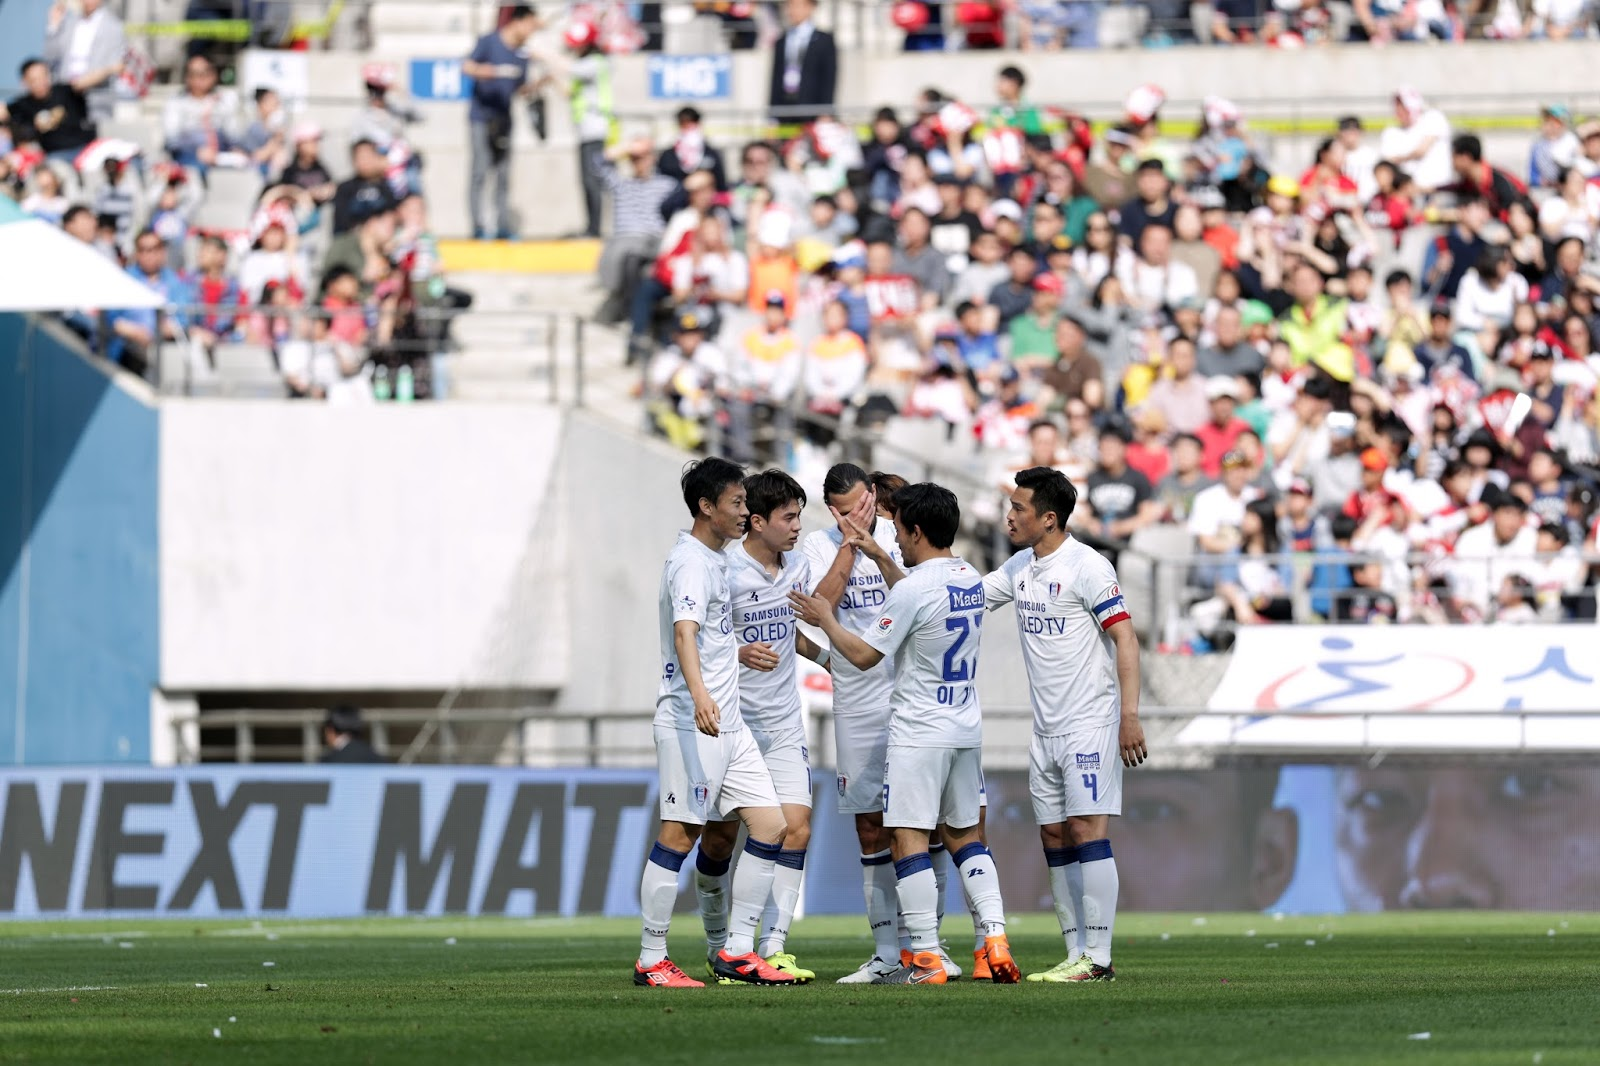 Preview: Suwon Bluewings Vs Daegu FC K League 1 Round 13